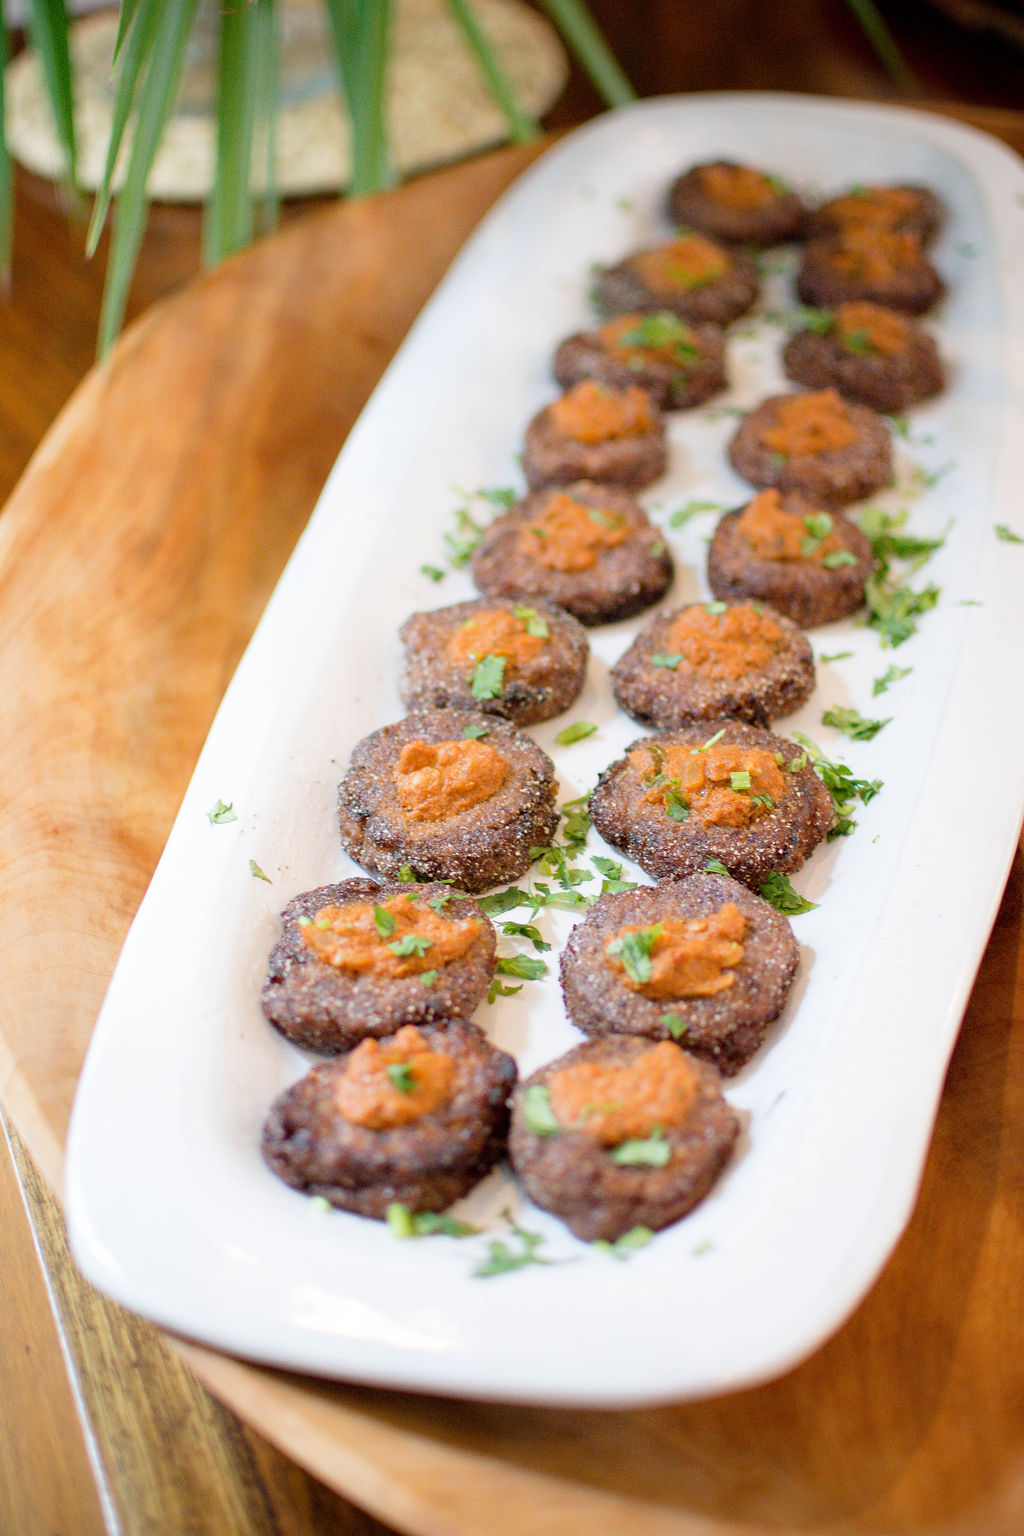 ssn26of52 Lowcountry, High Cuisine: Tips for Casual Southern Entertaining